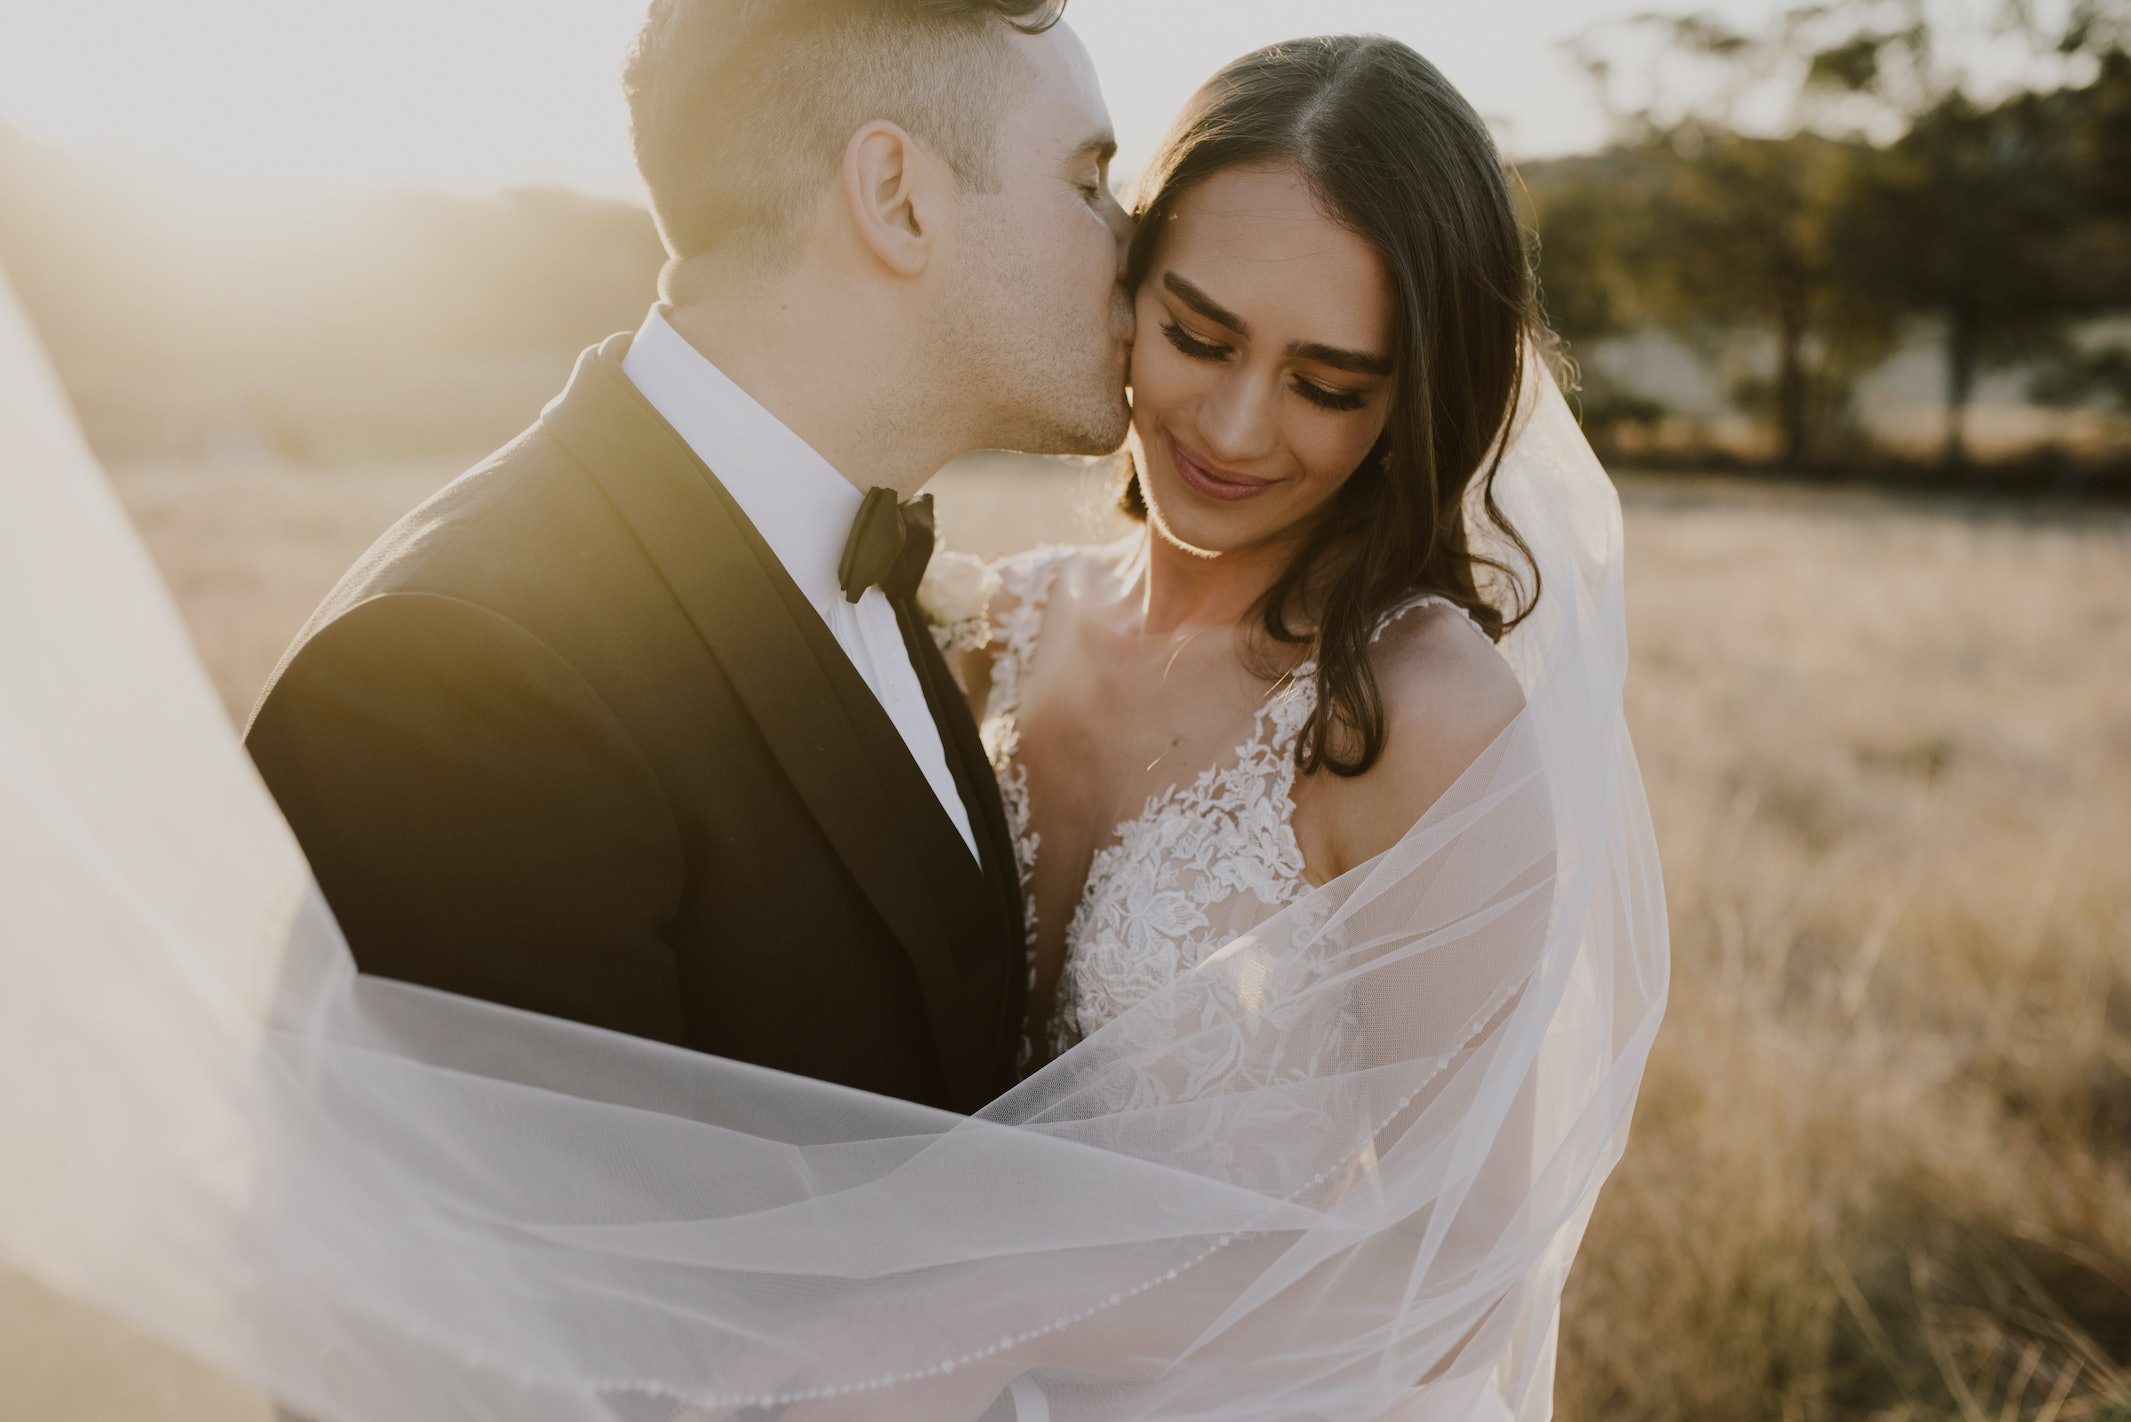 Groom kissing bride with veil blowing in the wind